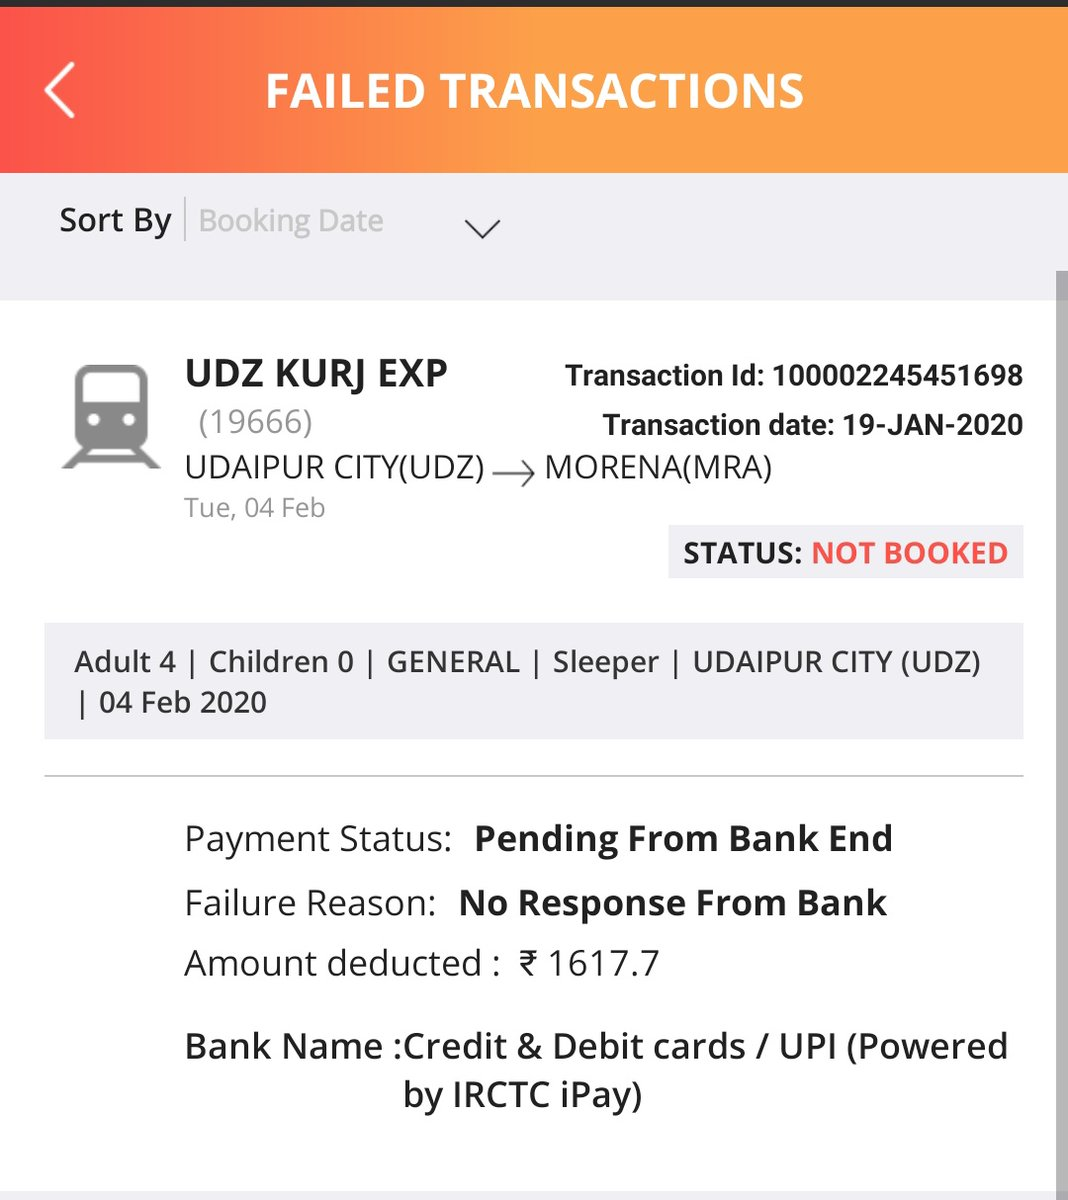 Dear @SBICard_Connect @TheOfficialSBI  I was just booked ticket by Using #SBICreditCard on #IRCTCMobileApp at 7.42pm. Trainsaction was failed & Same pic attached in this tweet. Amount was dedected but refund still not comes. Plz confirm till when i will get refund ?<br>http://pic.twitter.com/tAXaIRuiek